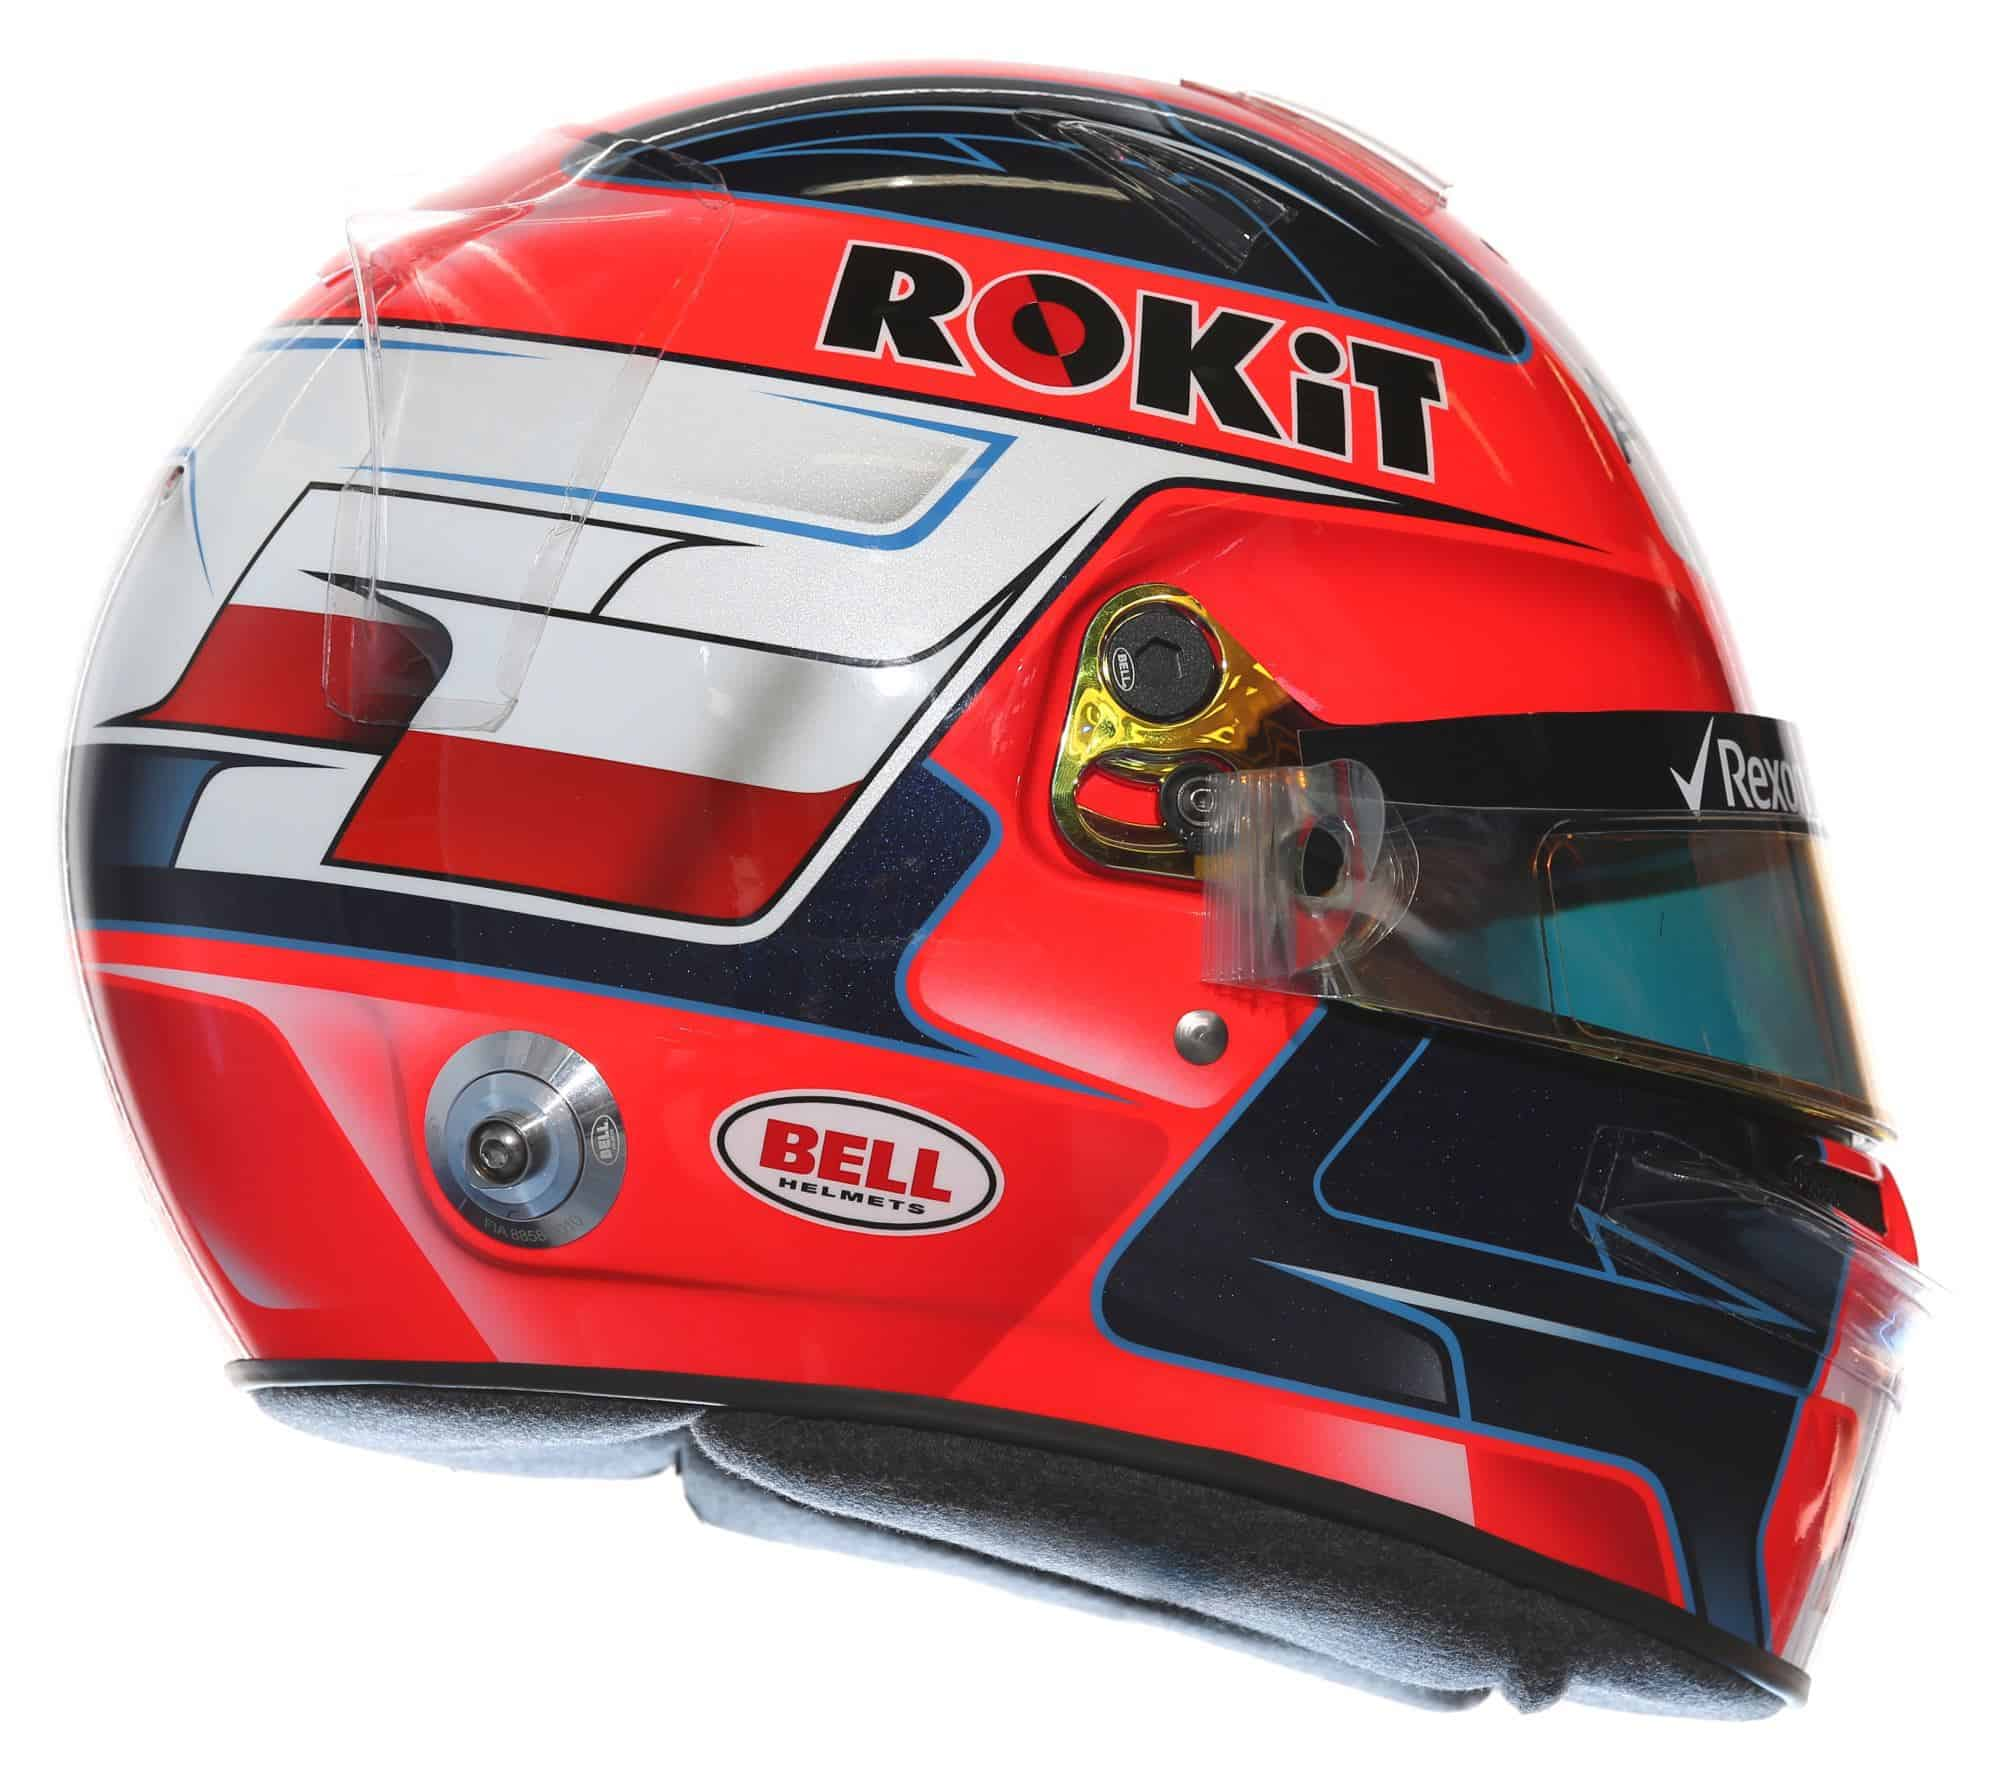 2019 Rokit Williams Racing Robert Kubica helmet right side Photo Williams Edited by MAXF1net